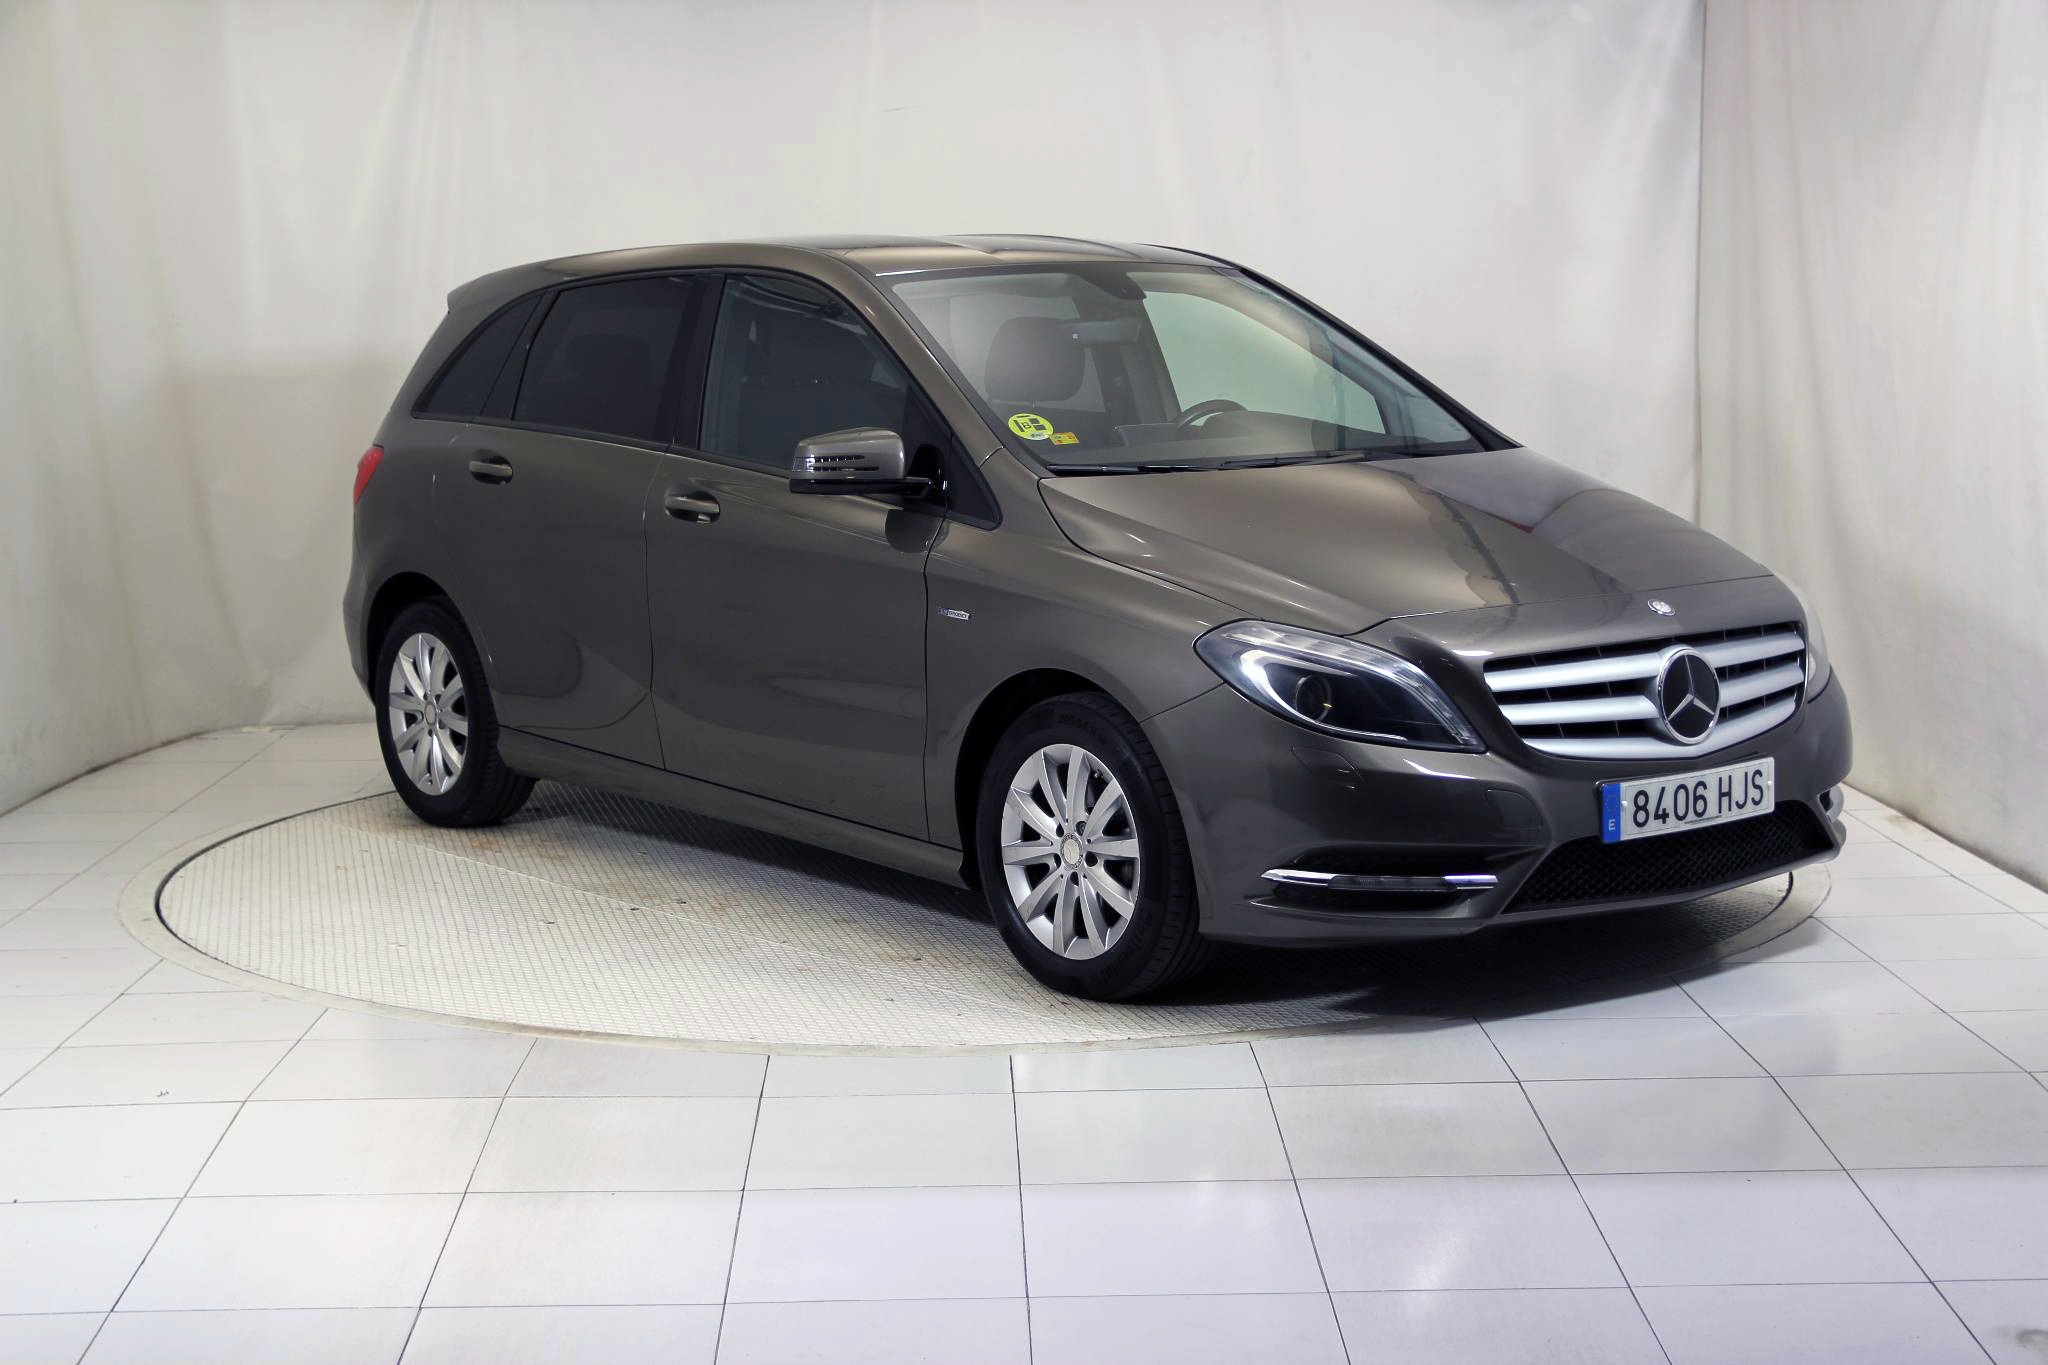 Mercedes-Benz Clase B CLASE B 180 CDI BLUE EFFICIENCY 5P imagen 4